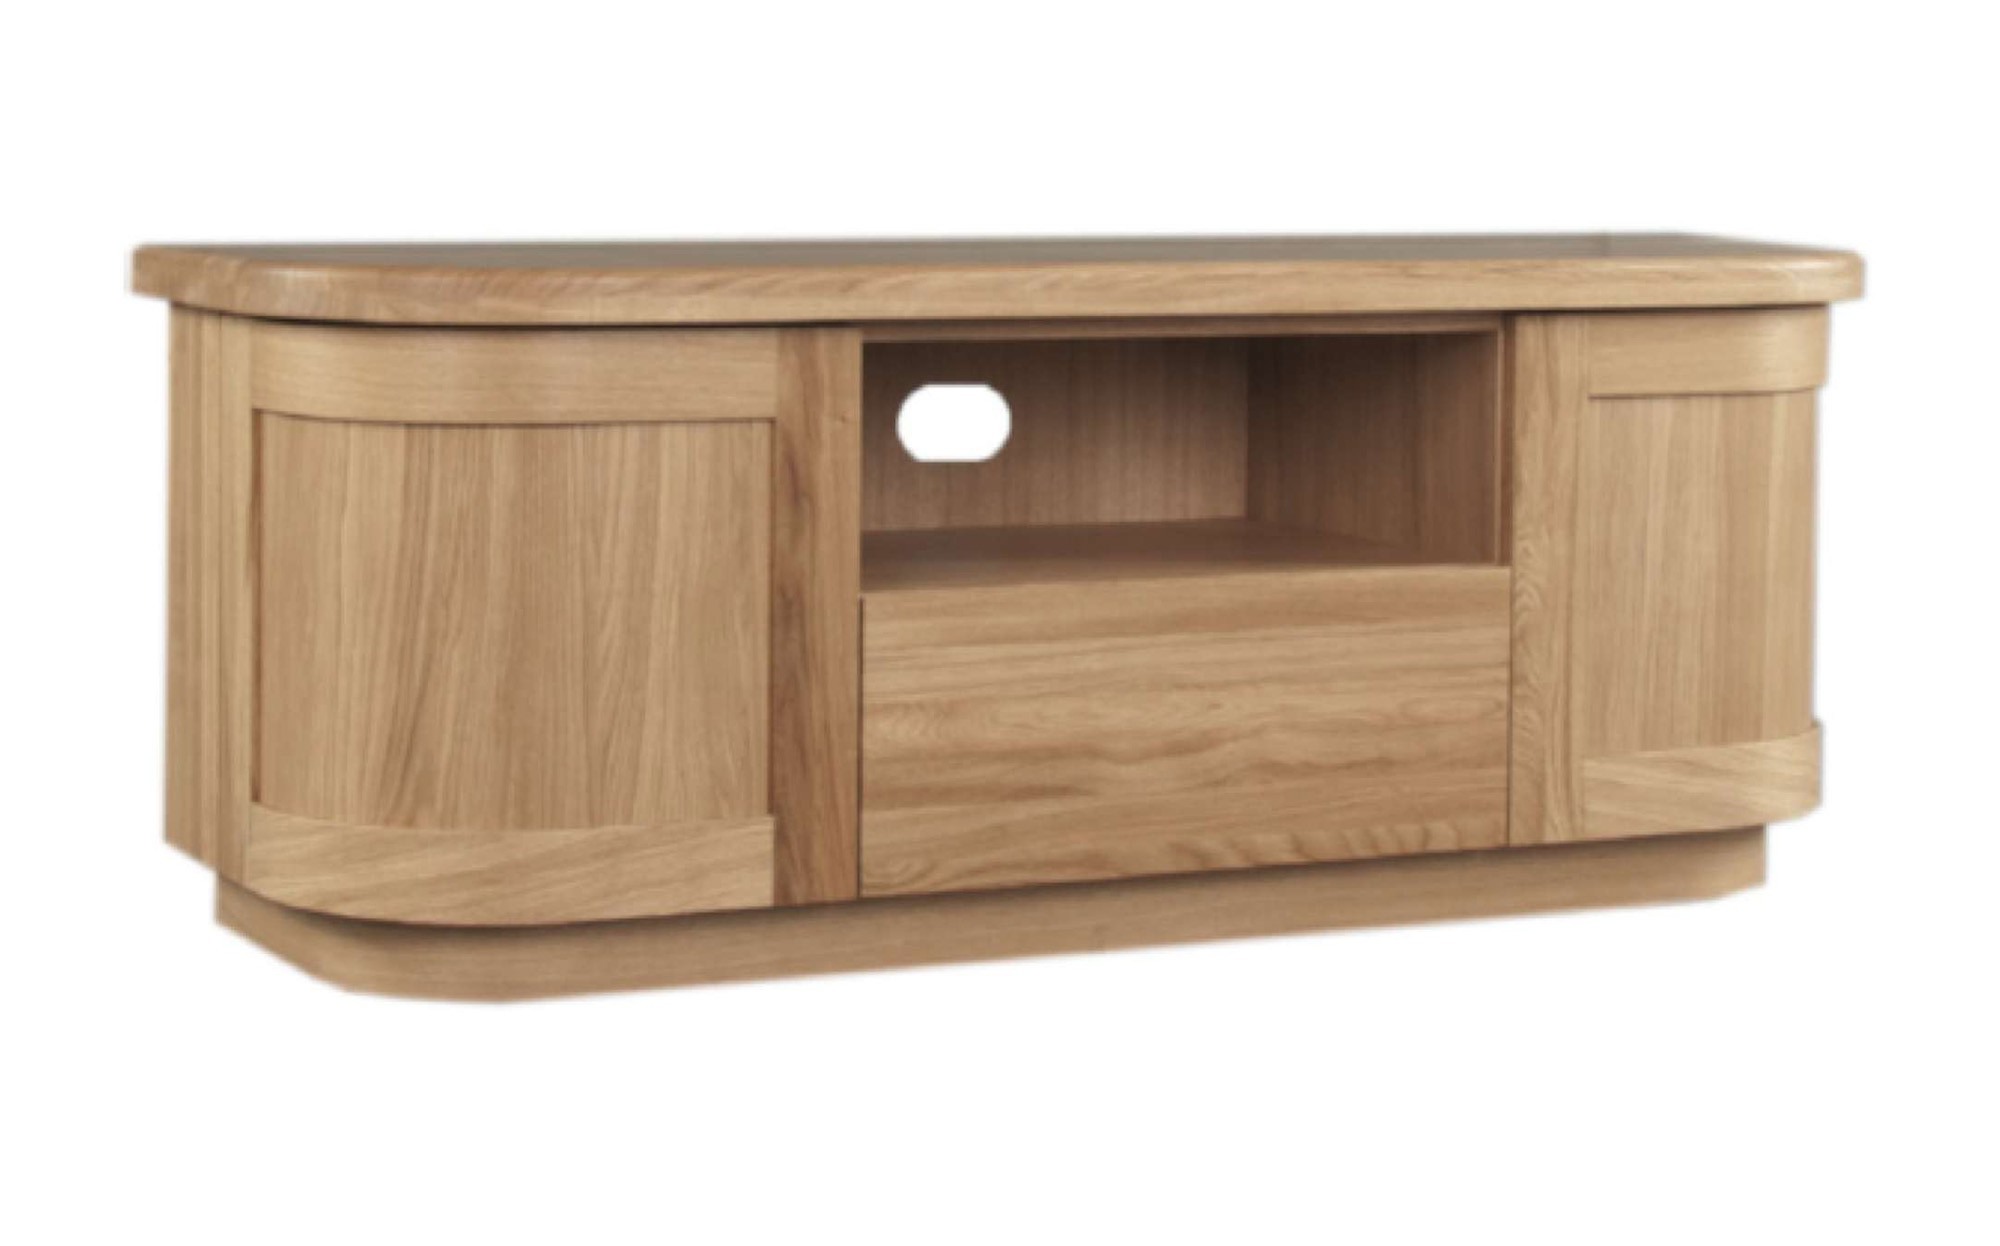 Cheap Oak Tv Stands Intended For Most Popular Unfinished Wood Corner Tv Stand Rustic Wooden Stands Diy Kits Solid (View 15 of 20)